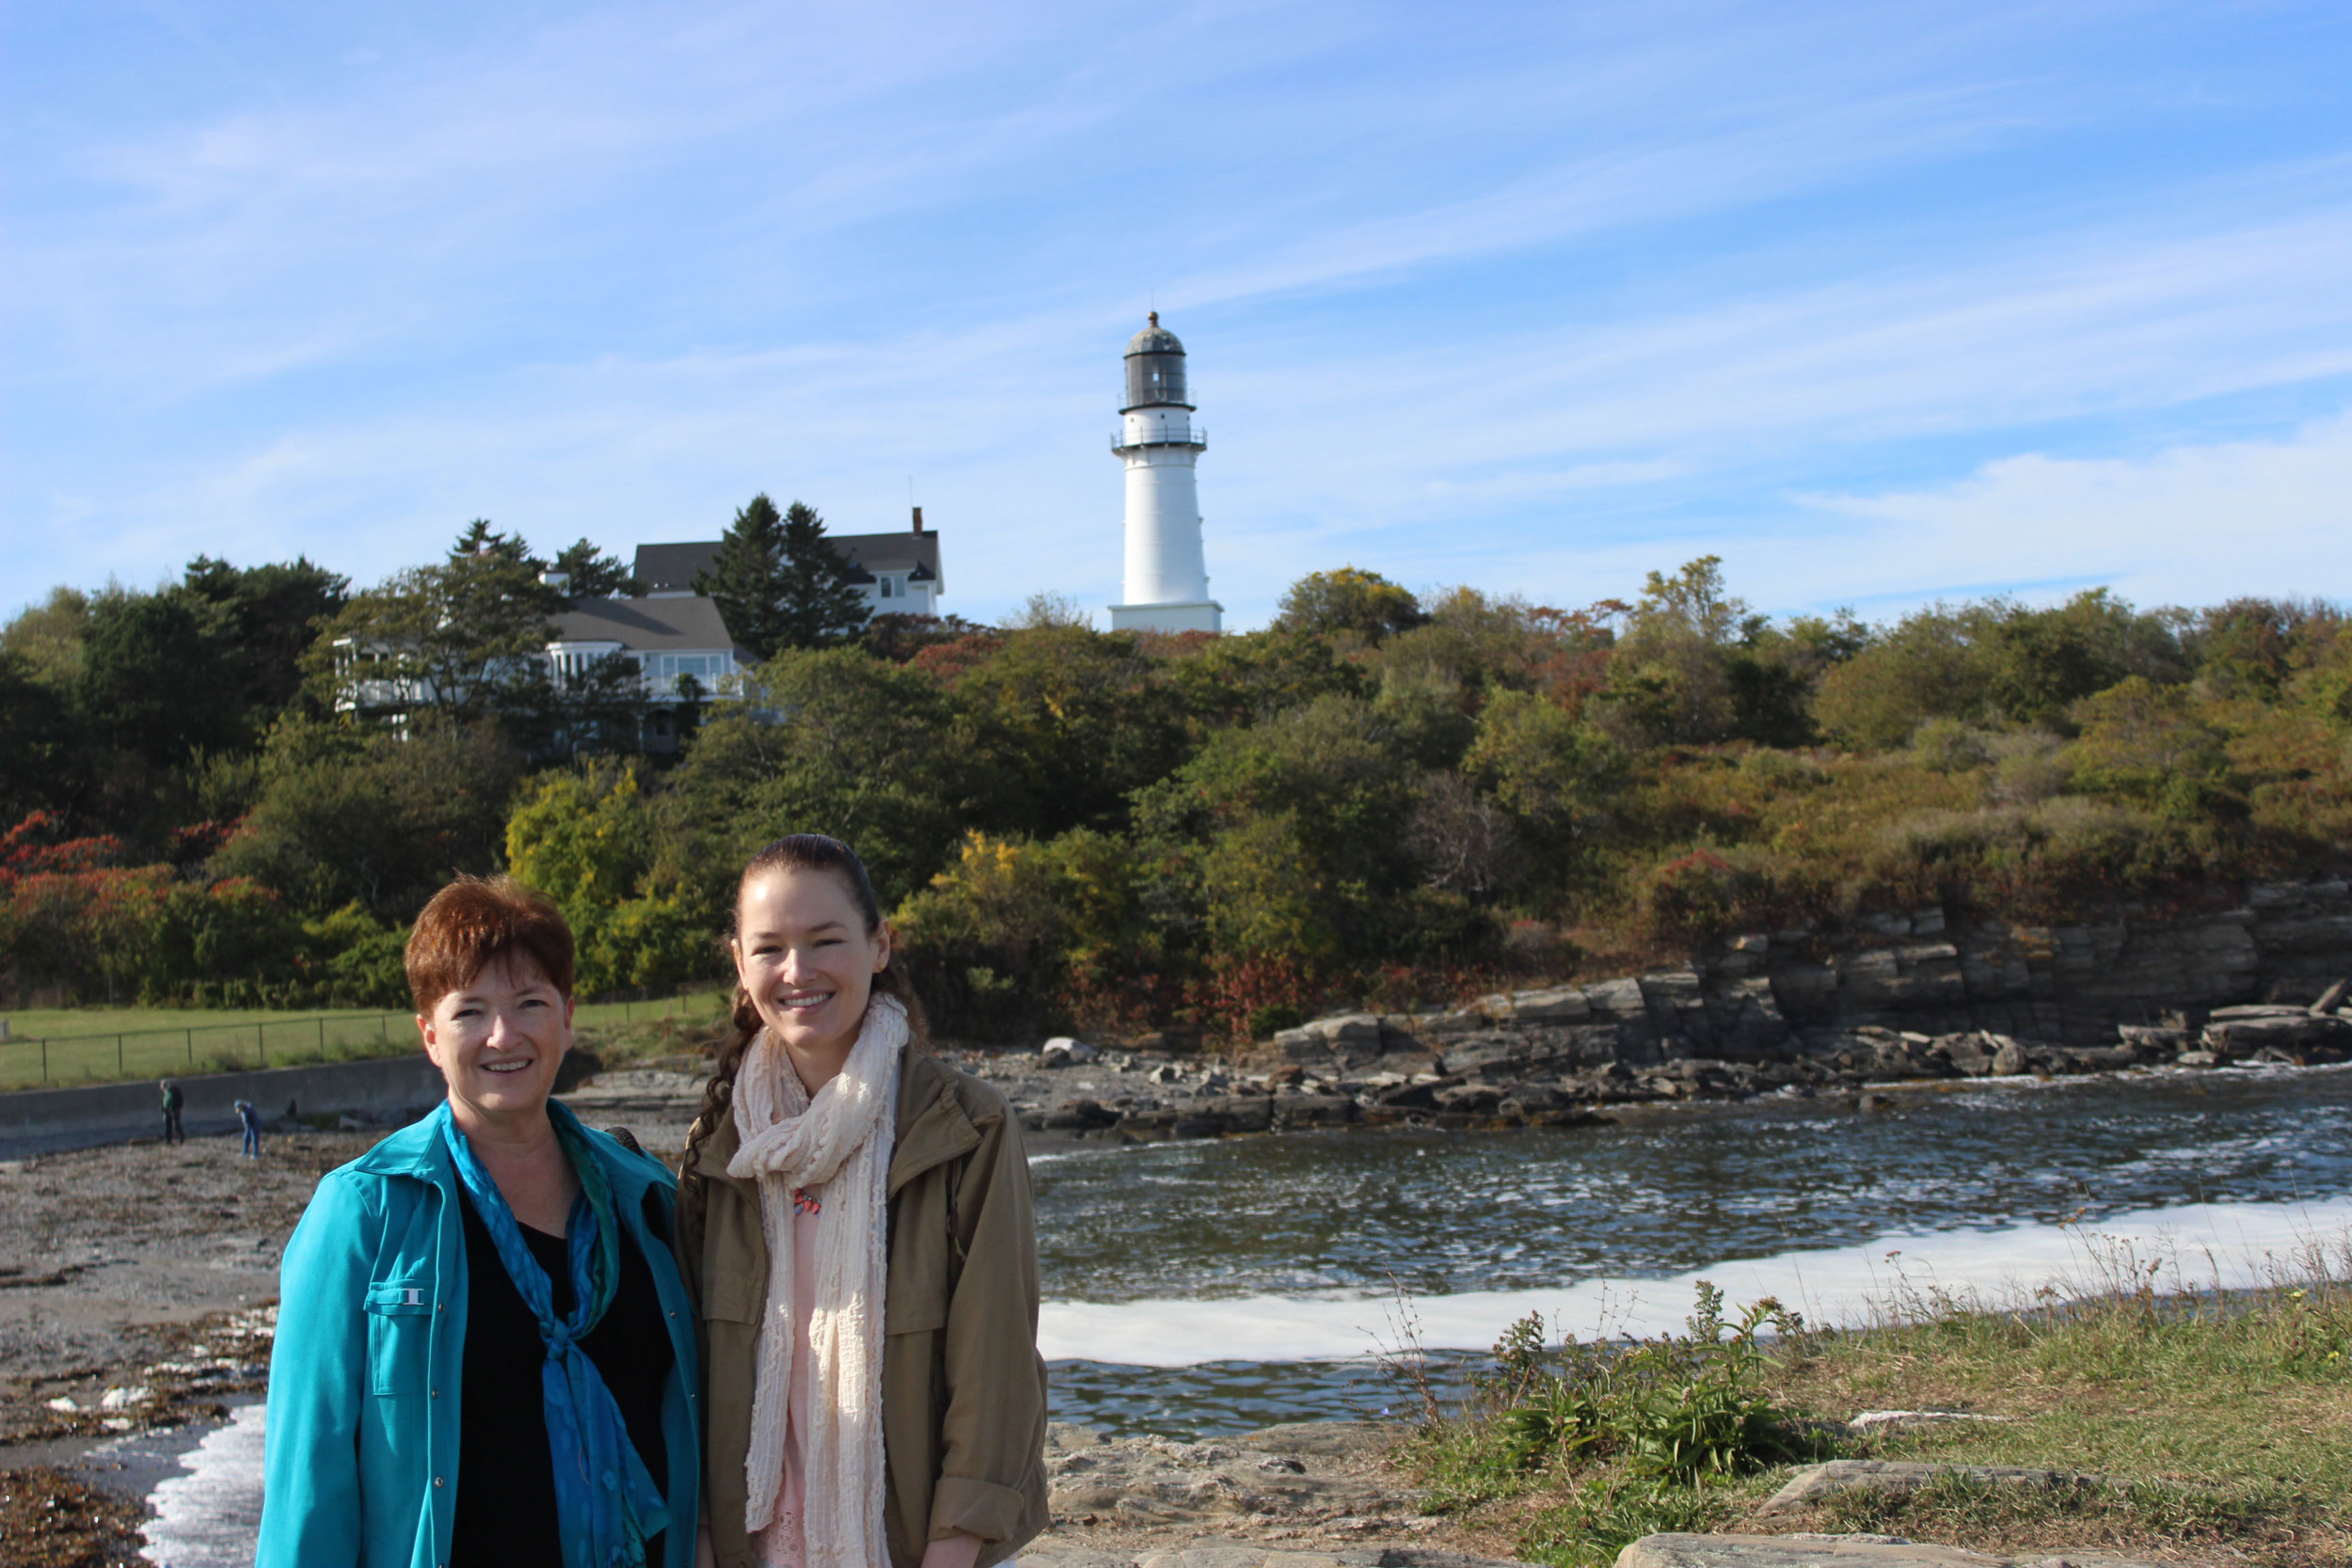 Only the Eastern Tower of the two lighthouses at Cape Elizabeth is still active.